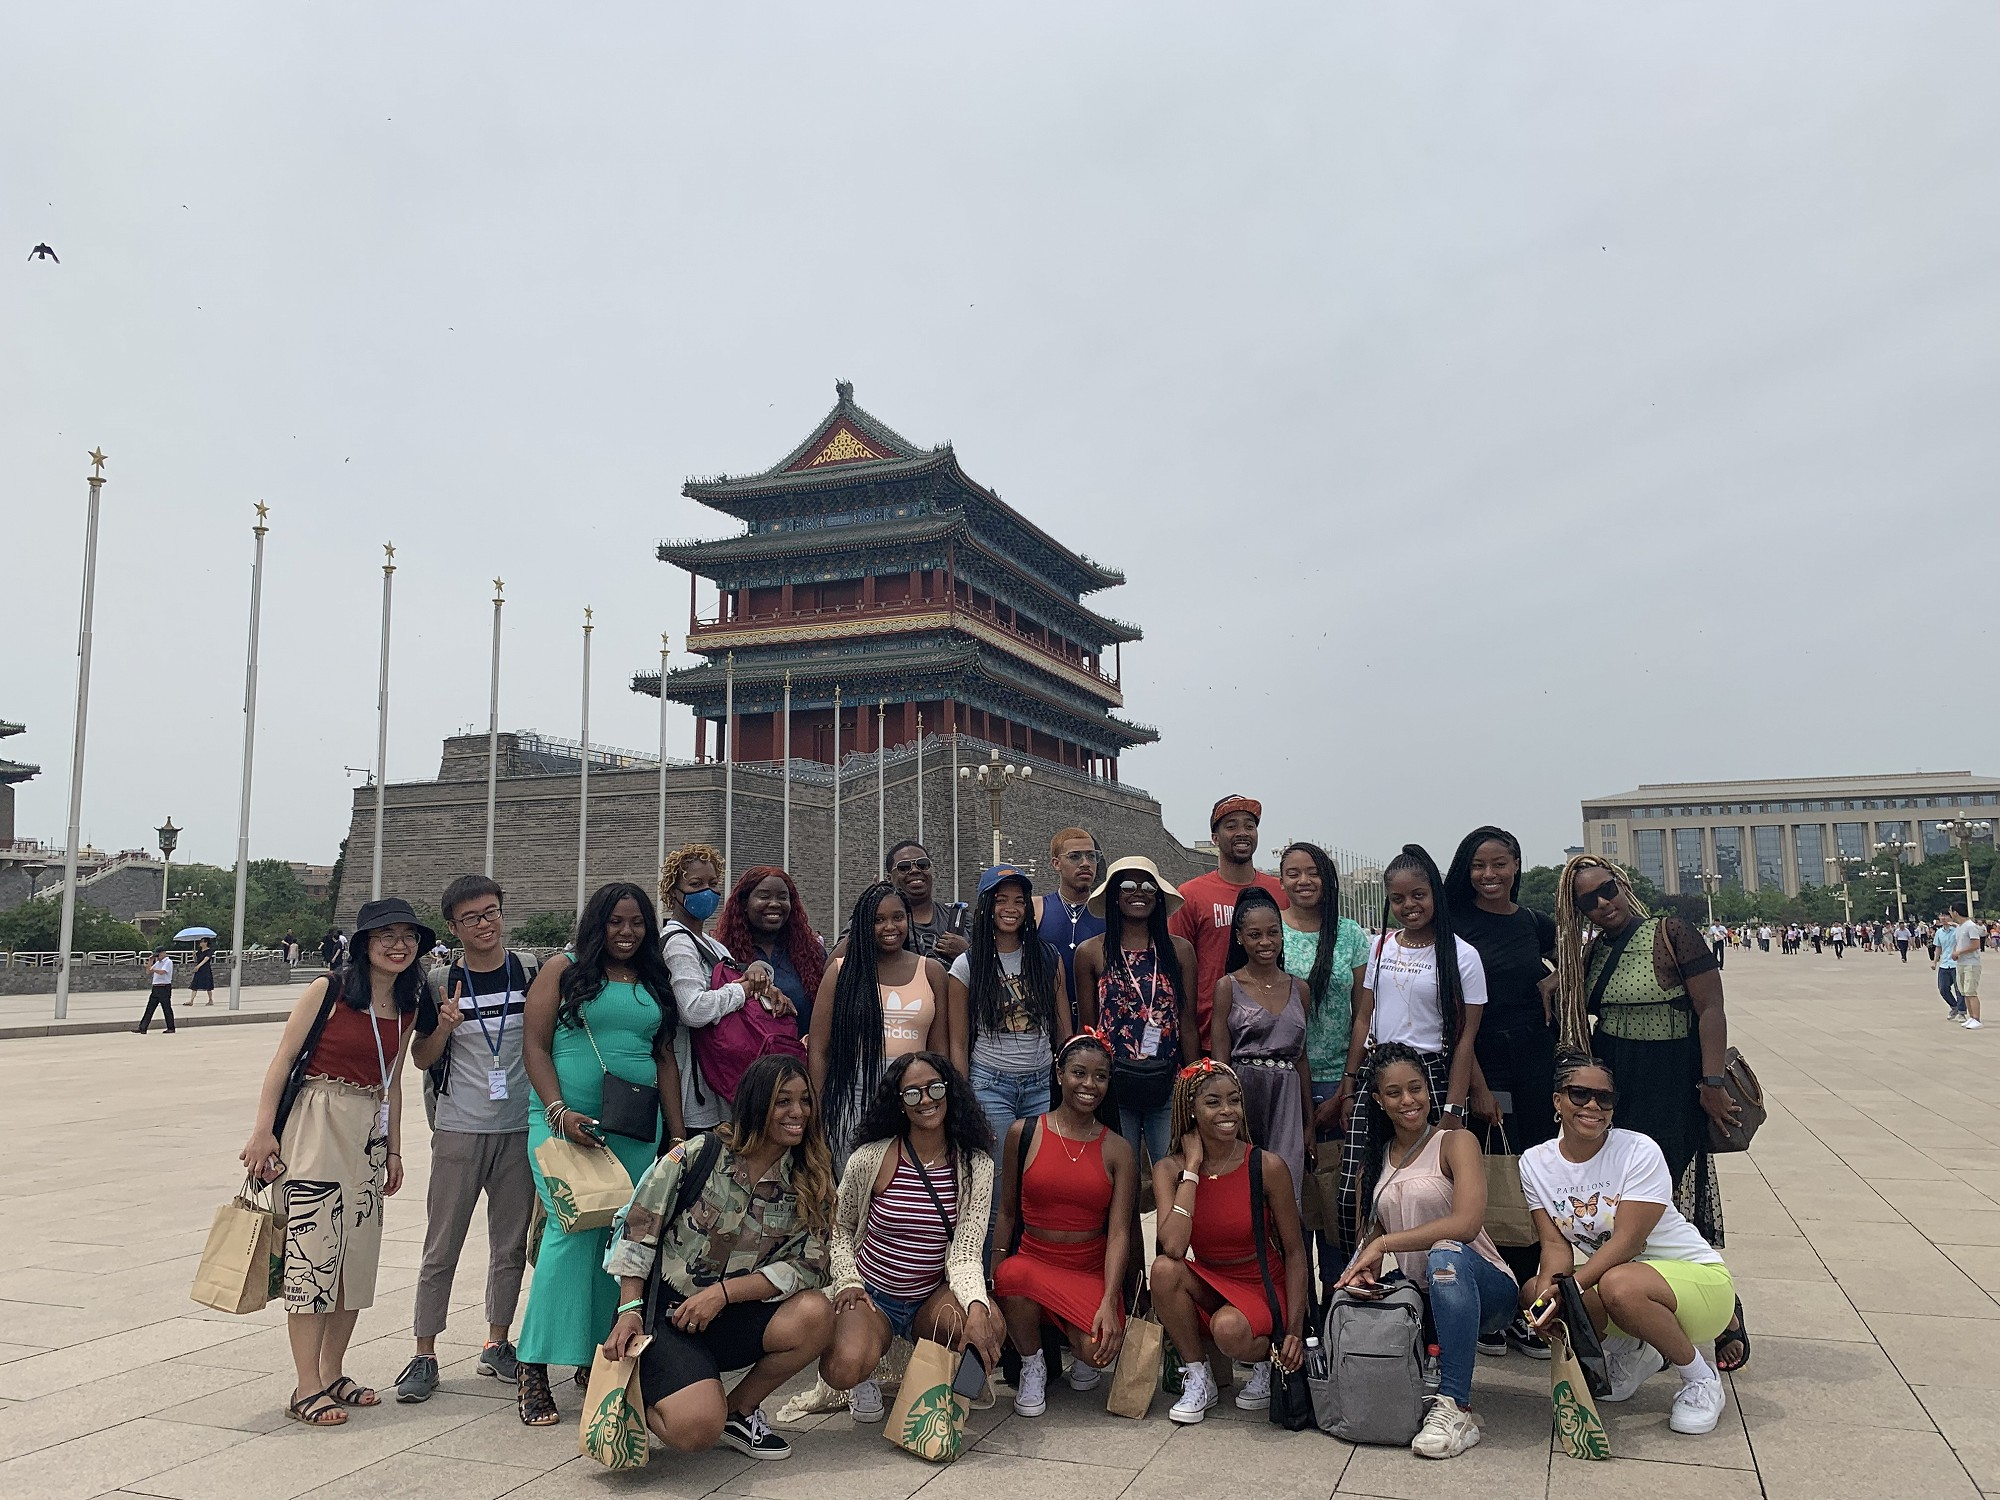 Clark Atlanta University (CAU) students and BFSU student volunteers group picture near Tiananmen Square.